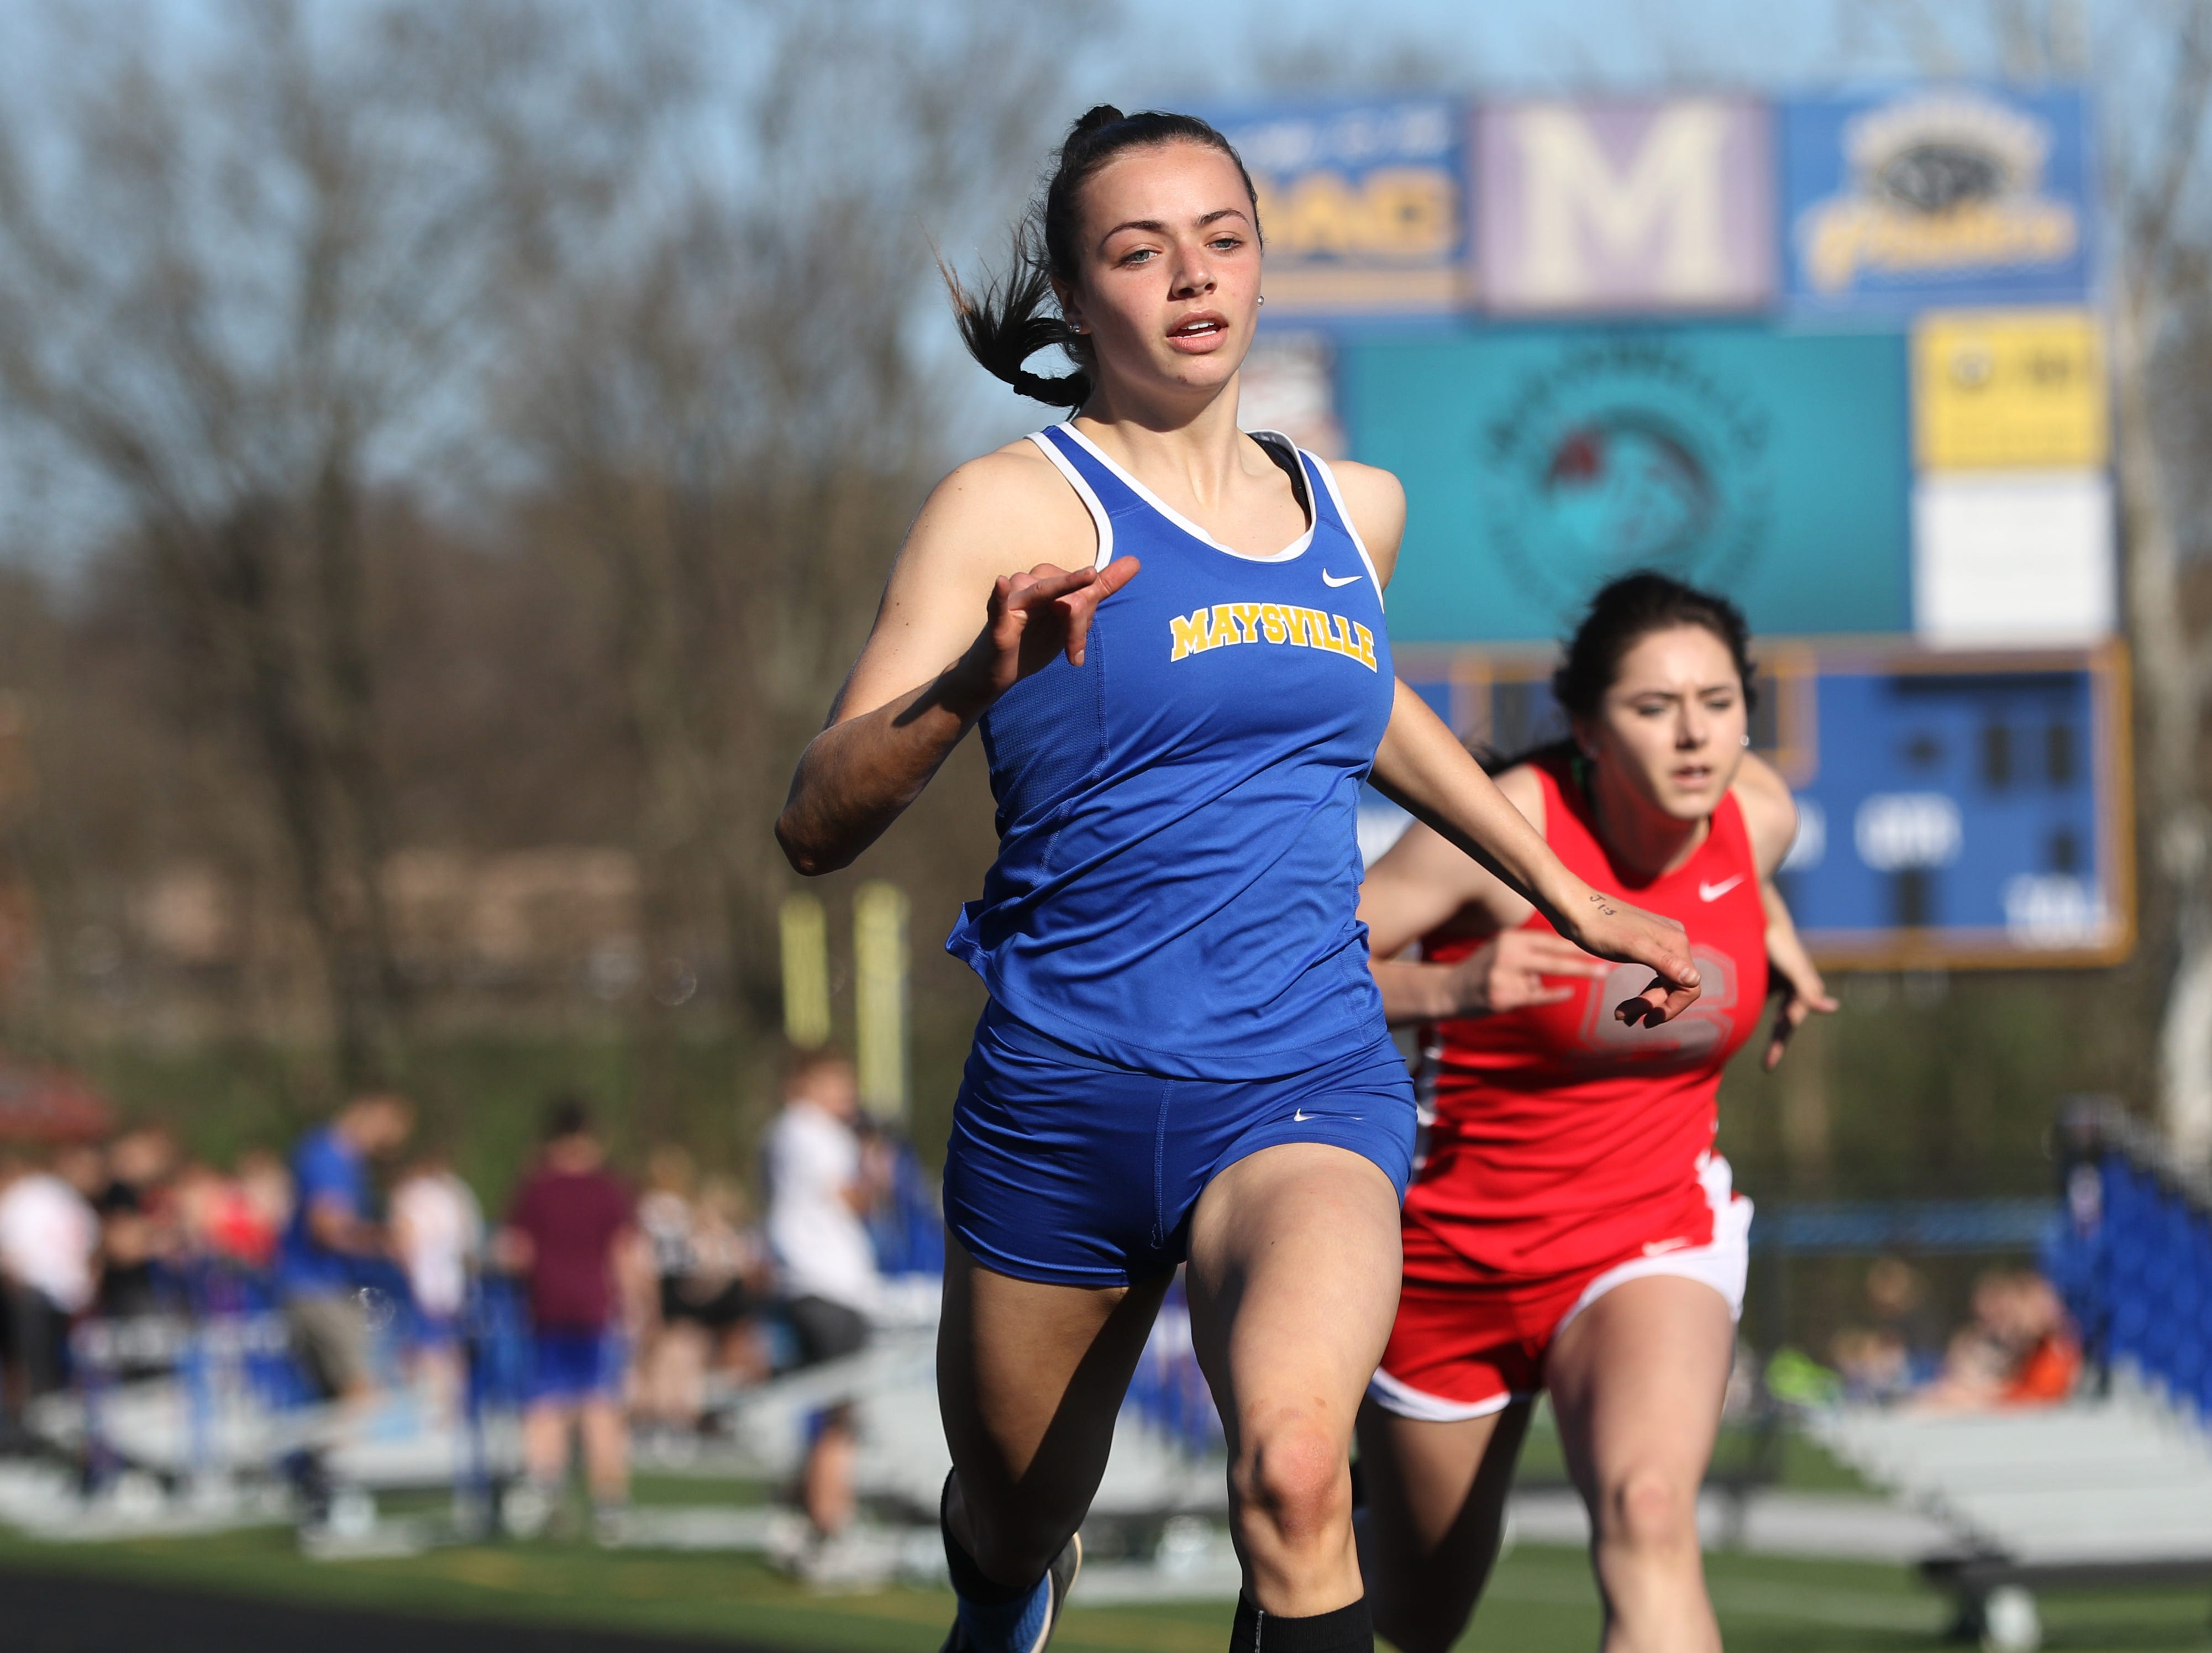 Paige Webb wins her heat of the 100 meter dash during Tuesday's tri-meet between Sheridan, New Lexington and host Maysville.